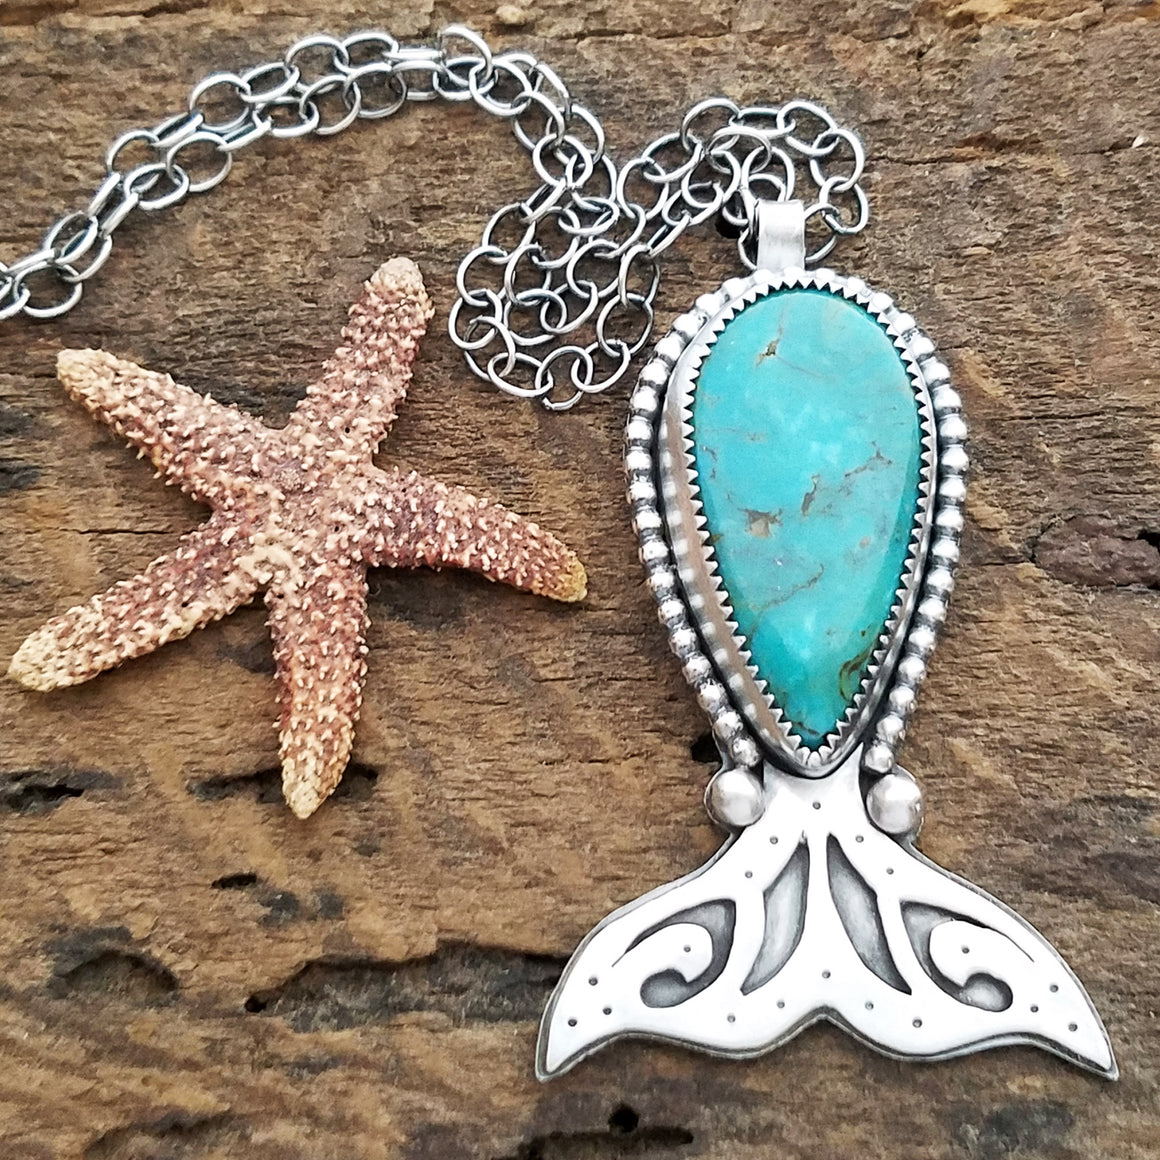 Whale's Tail Necklace with Campitos Turquoise